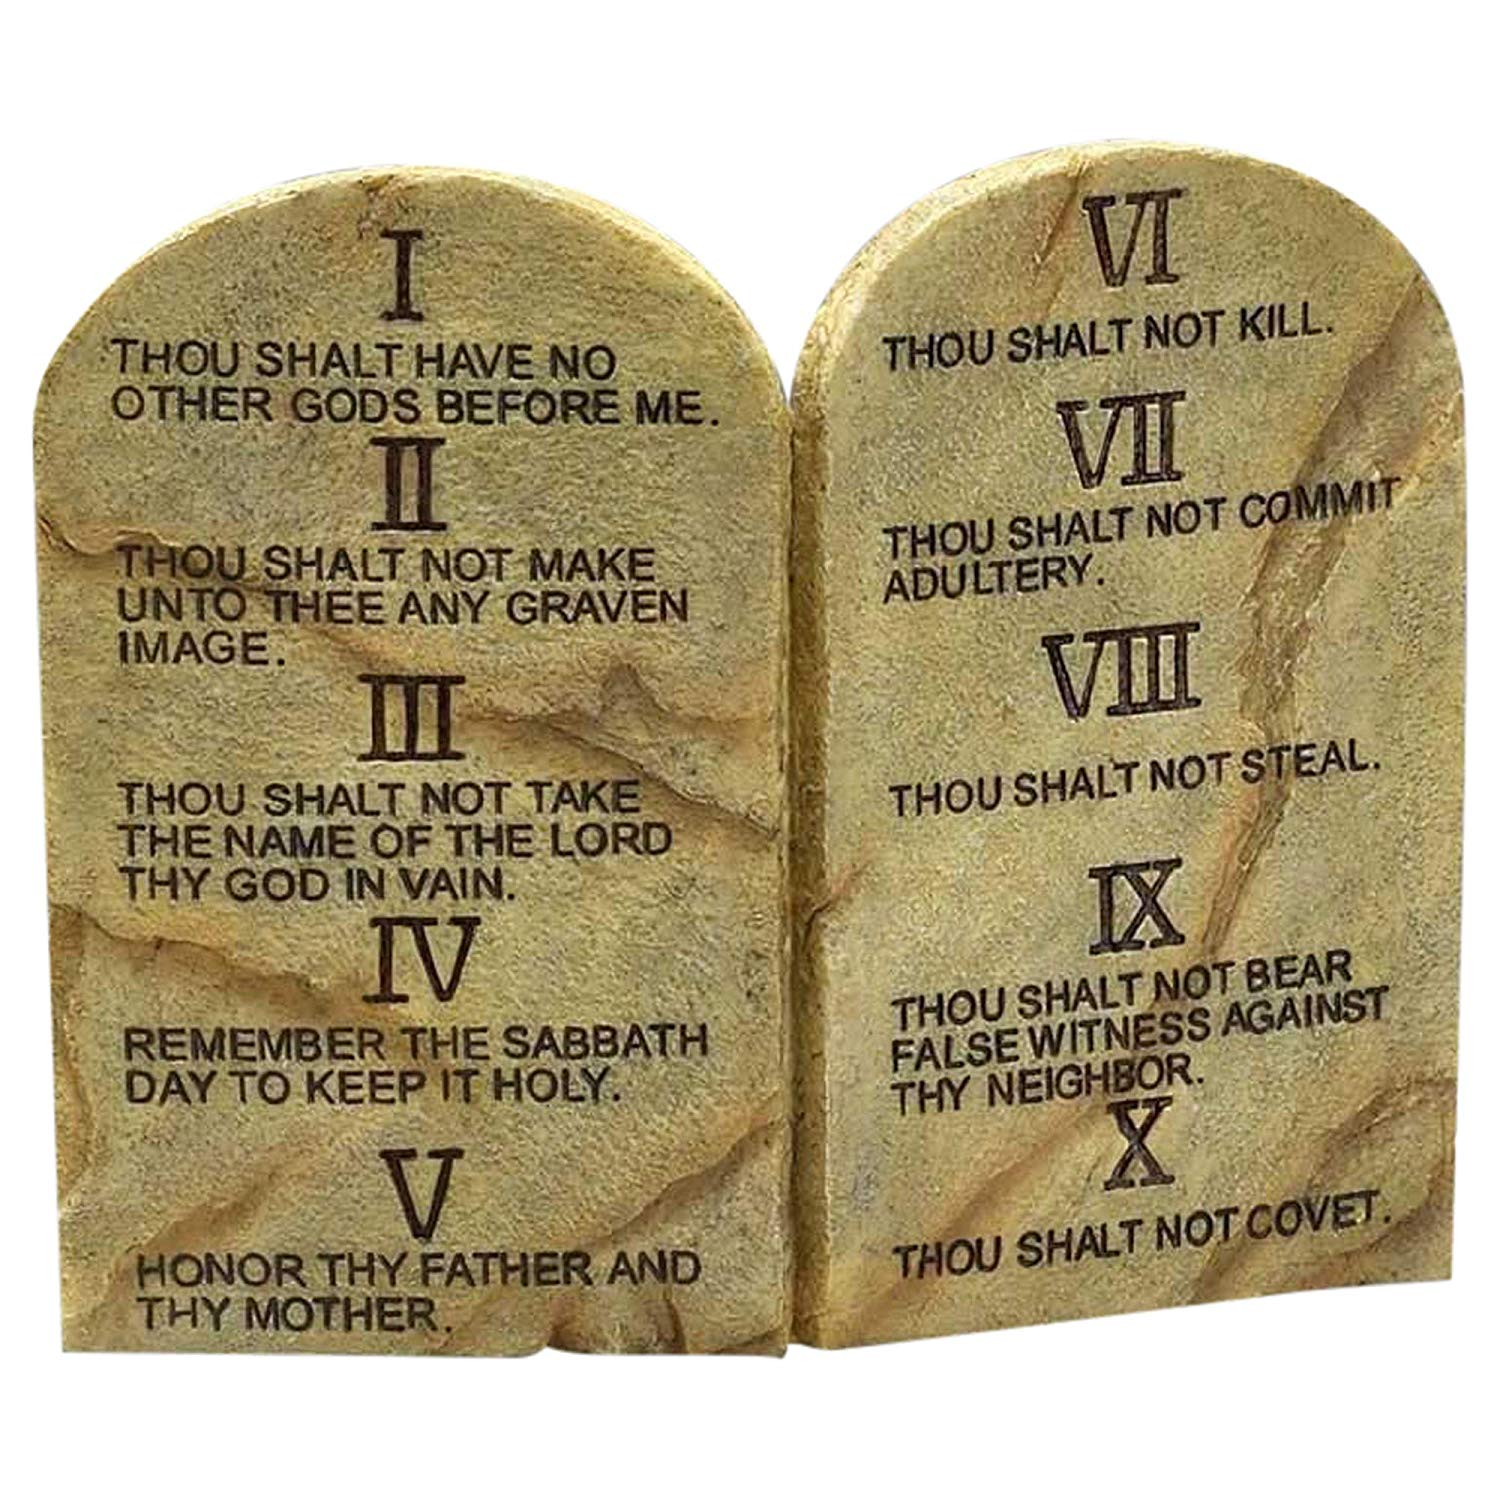 Facts About The Ten Commandments